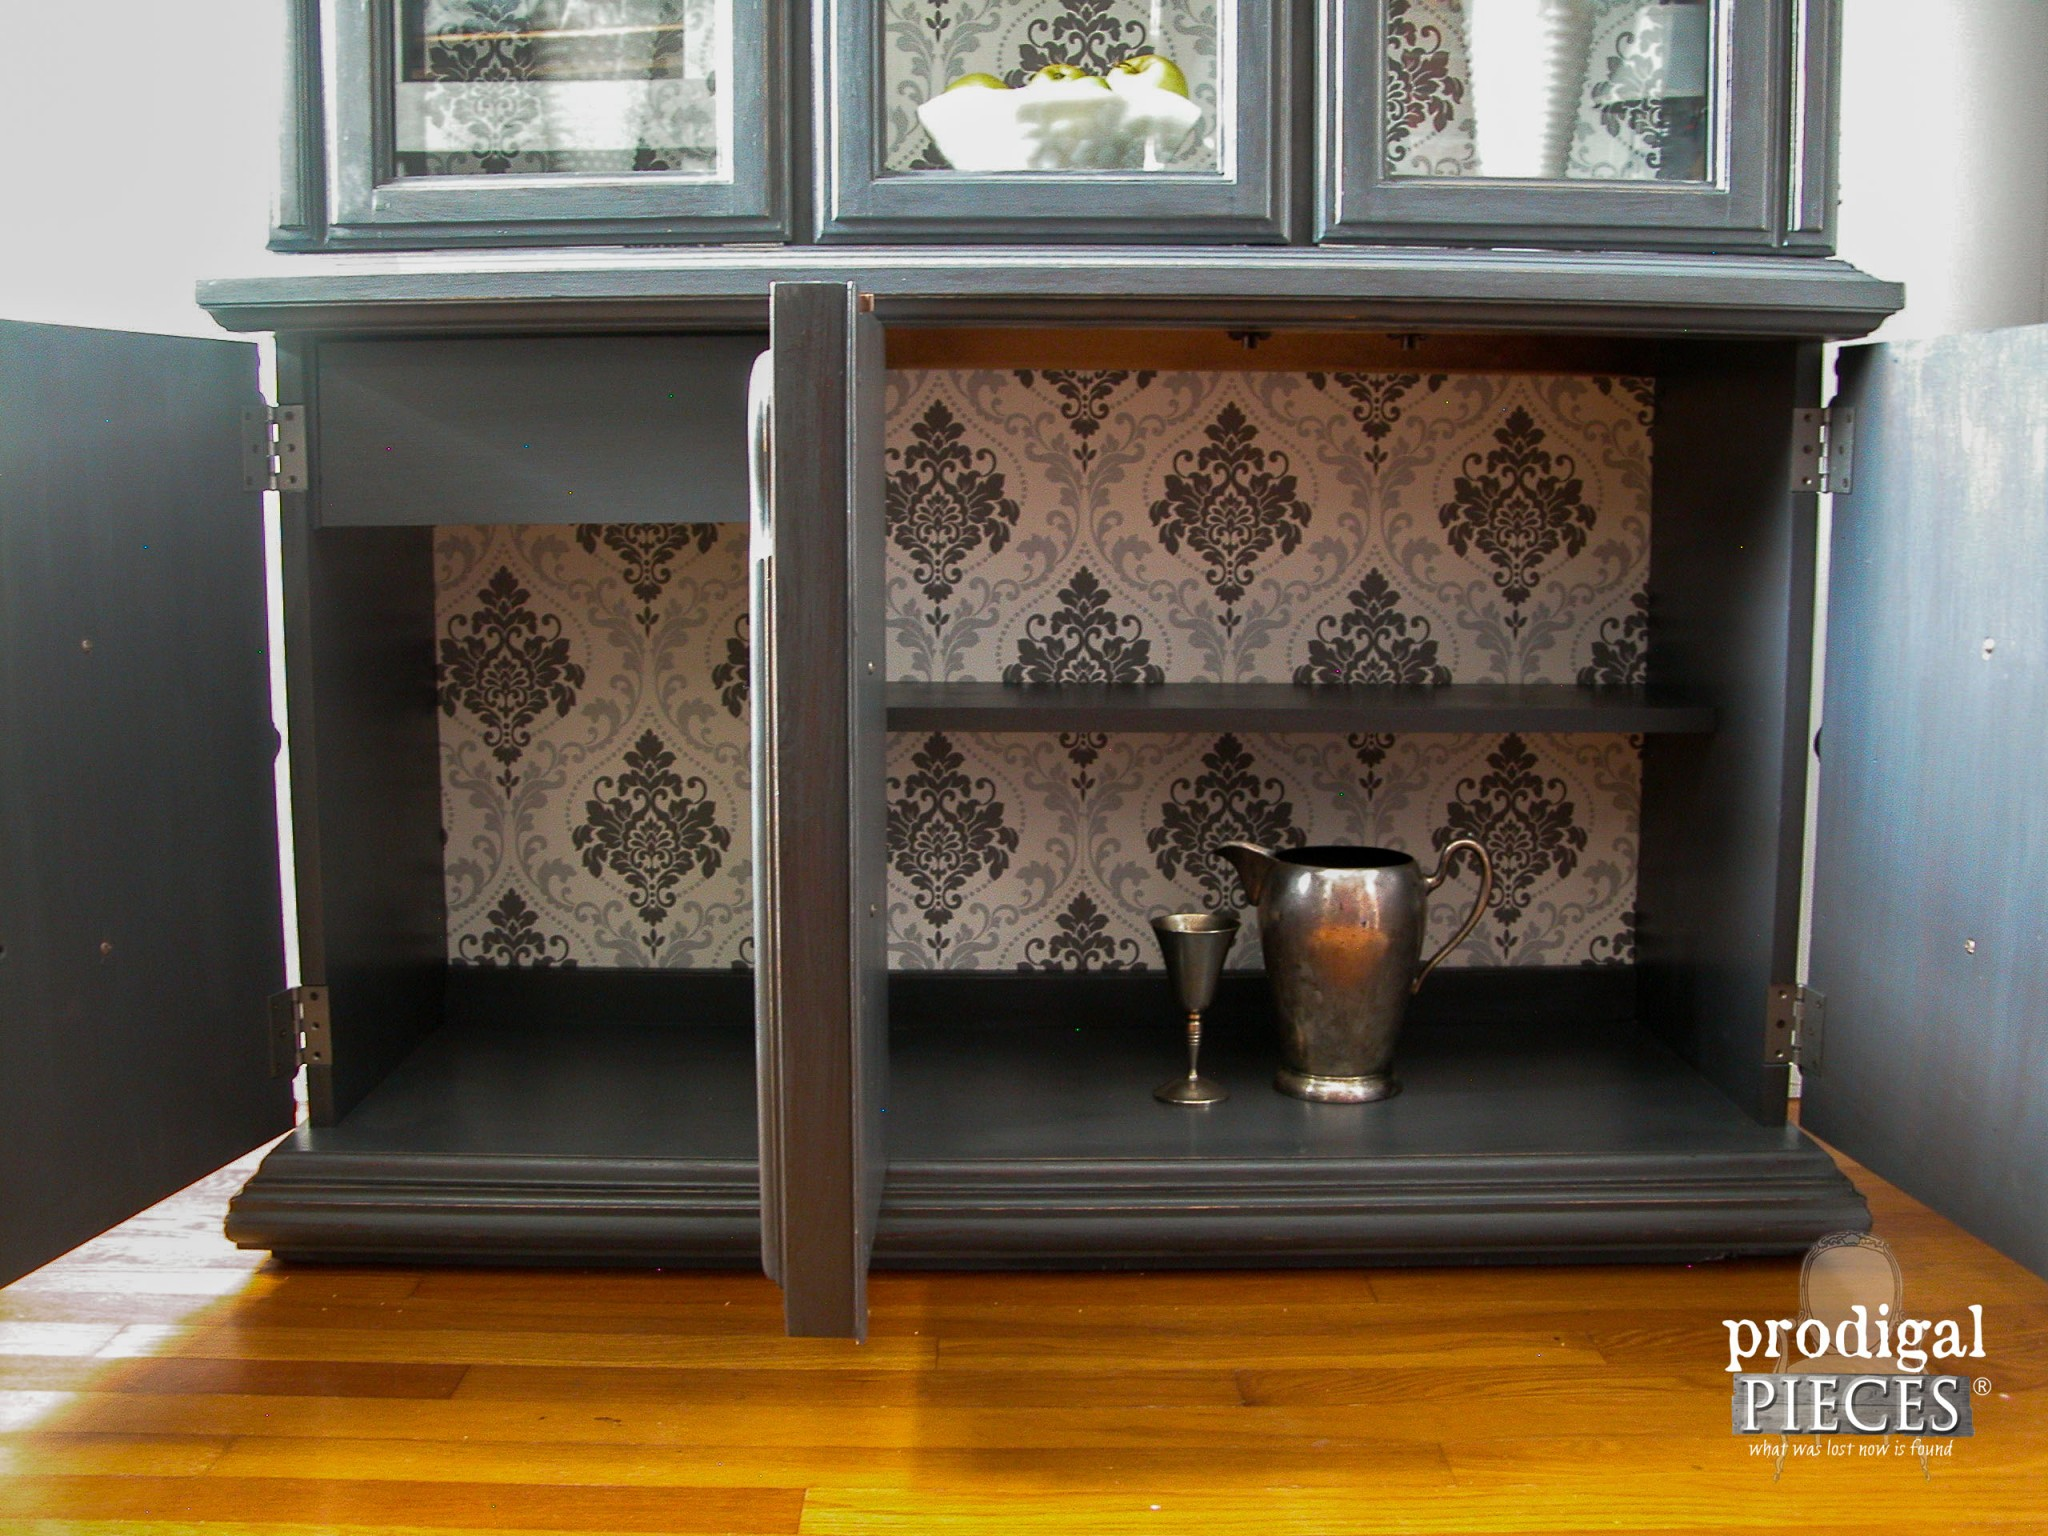 Bottom Storage of Wallpapered China Cabinet by Prodigal Pieces | www.prodigalpieces.com